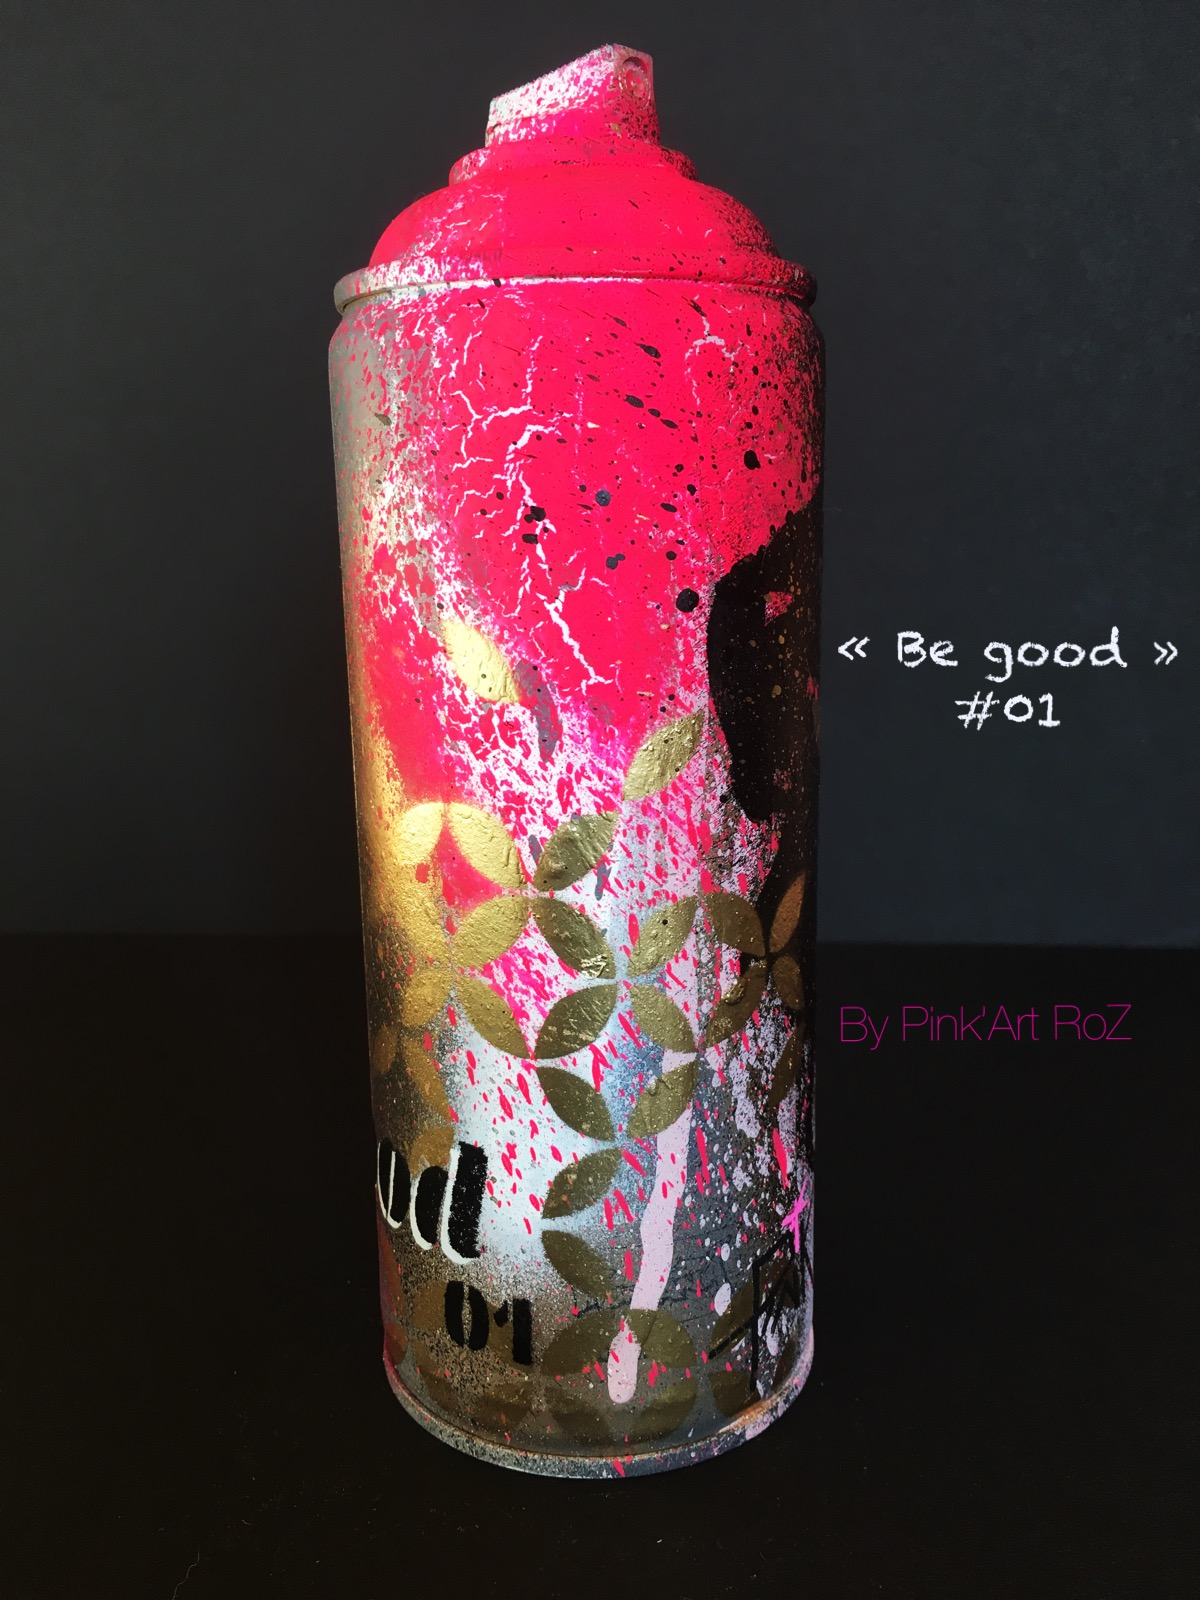 01 SPRAY BE GOOD 2 PINKARTROZ